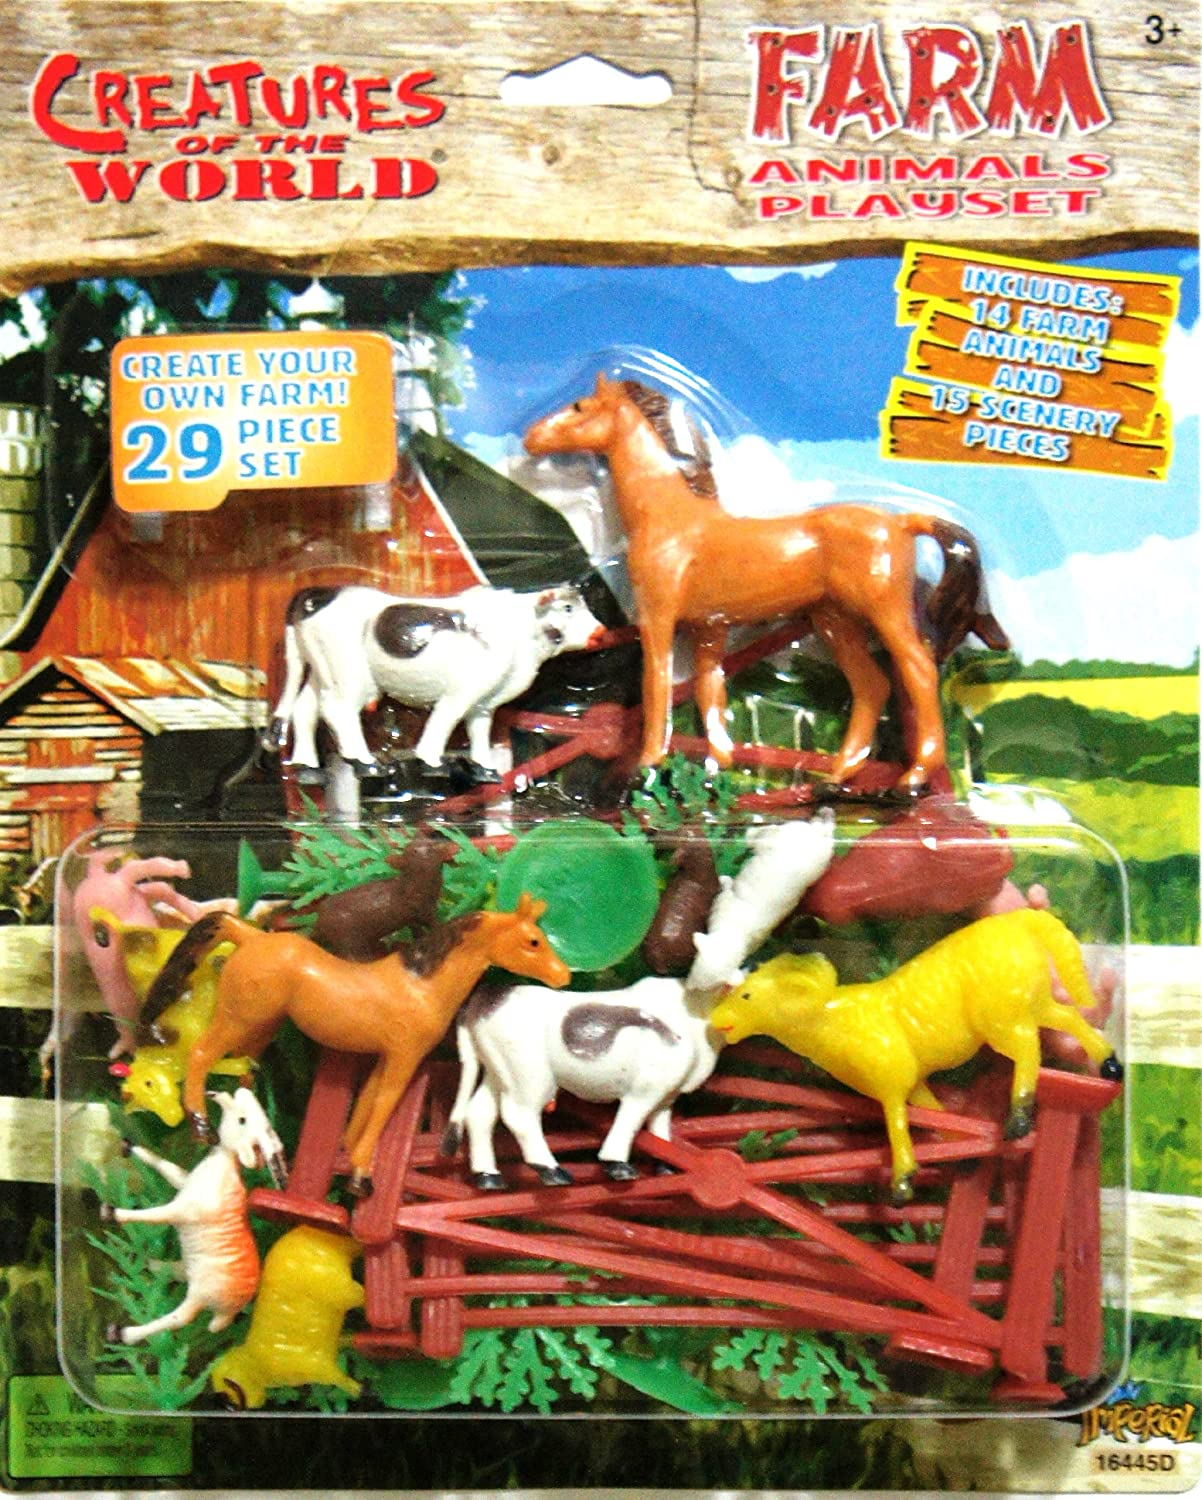 Creatures of the World Farm Animals PlaySet Collection Set - Create your Own FARM! 29 Piece Set